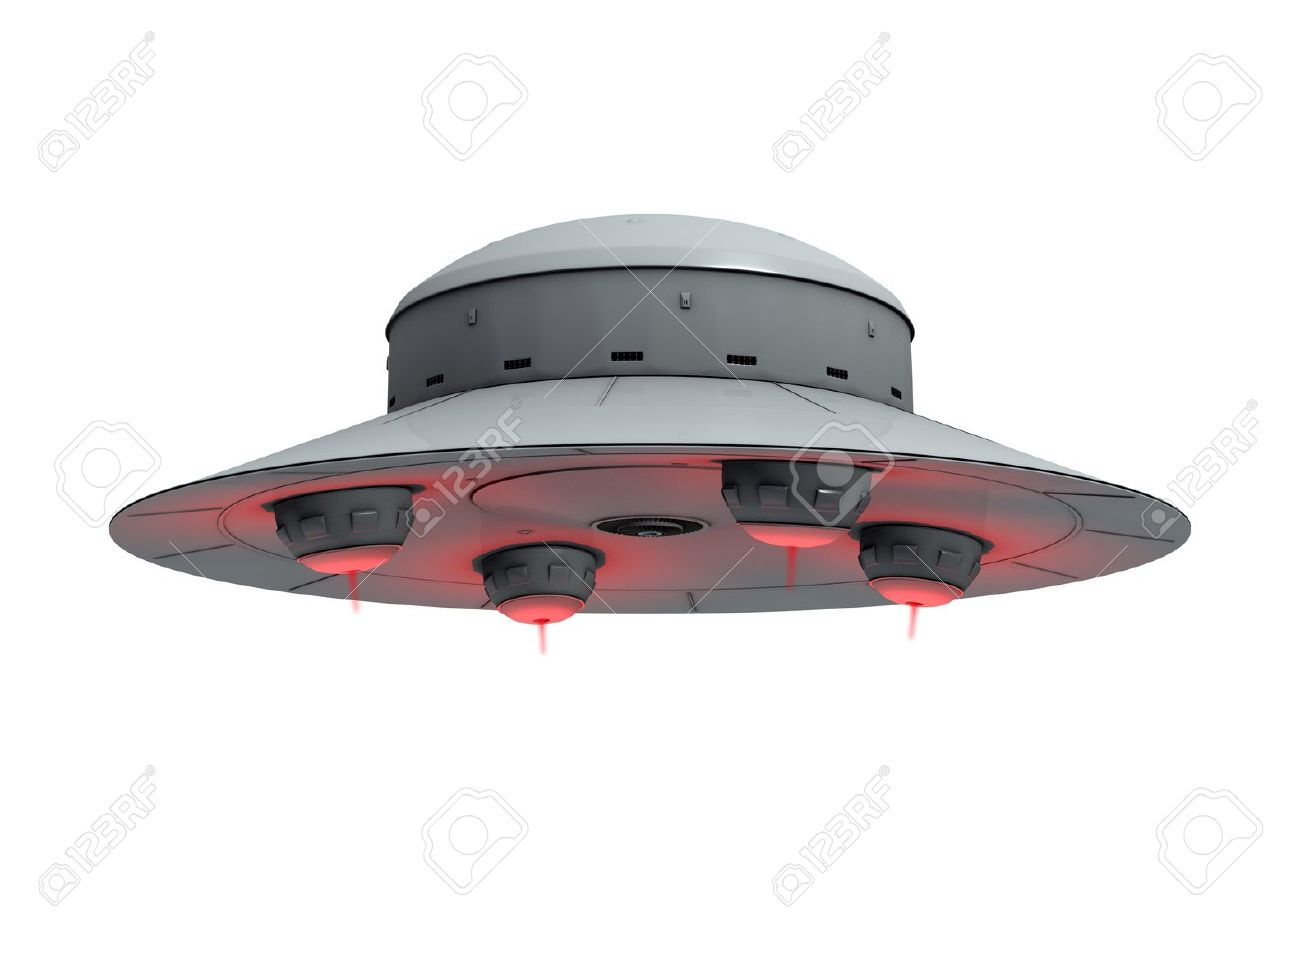 Ufo Transparent Background An isolated gray ufo with red